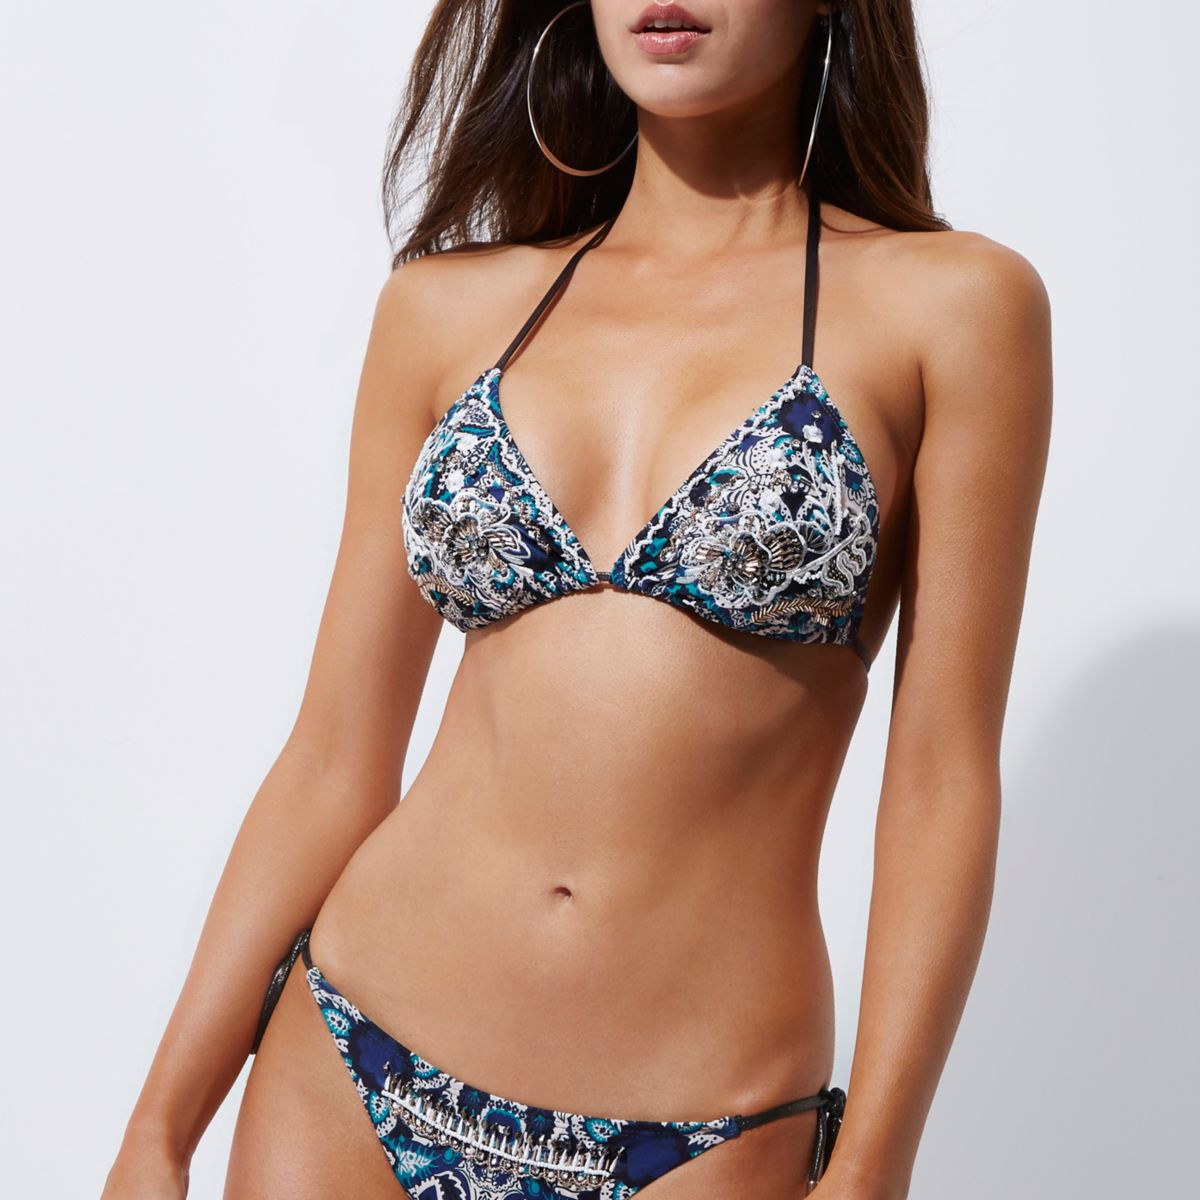 Blue embellished triangle string bikini top